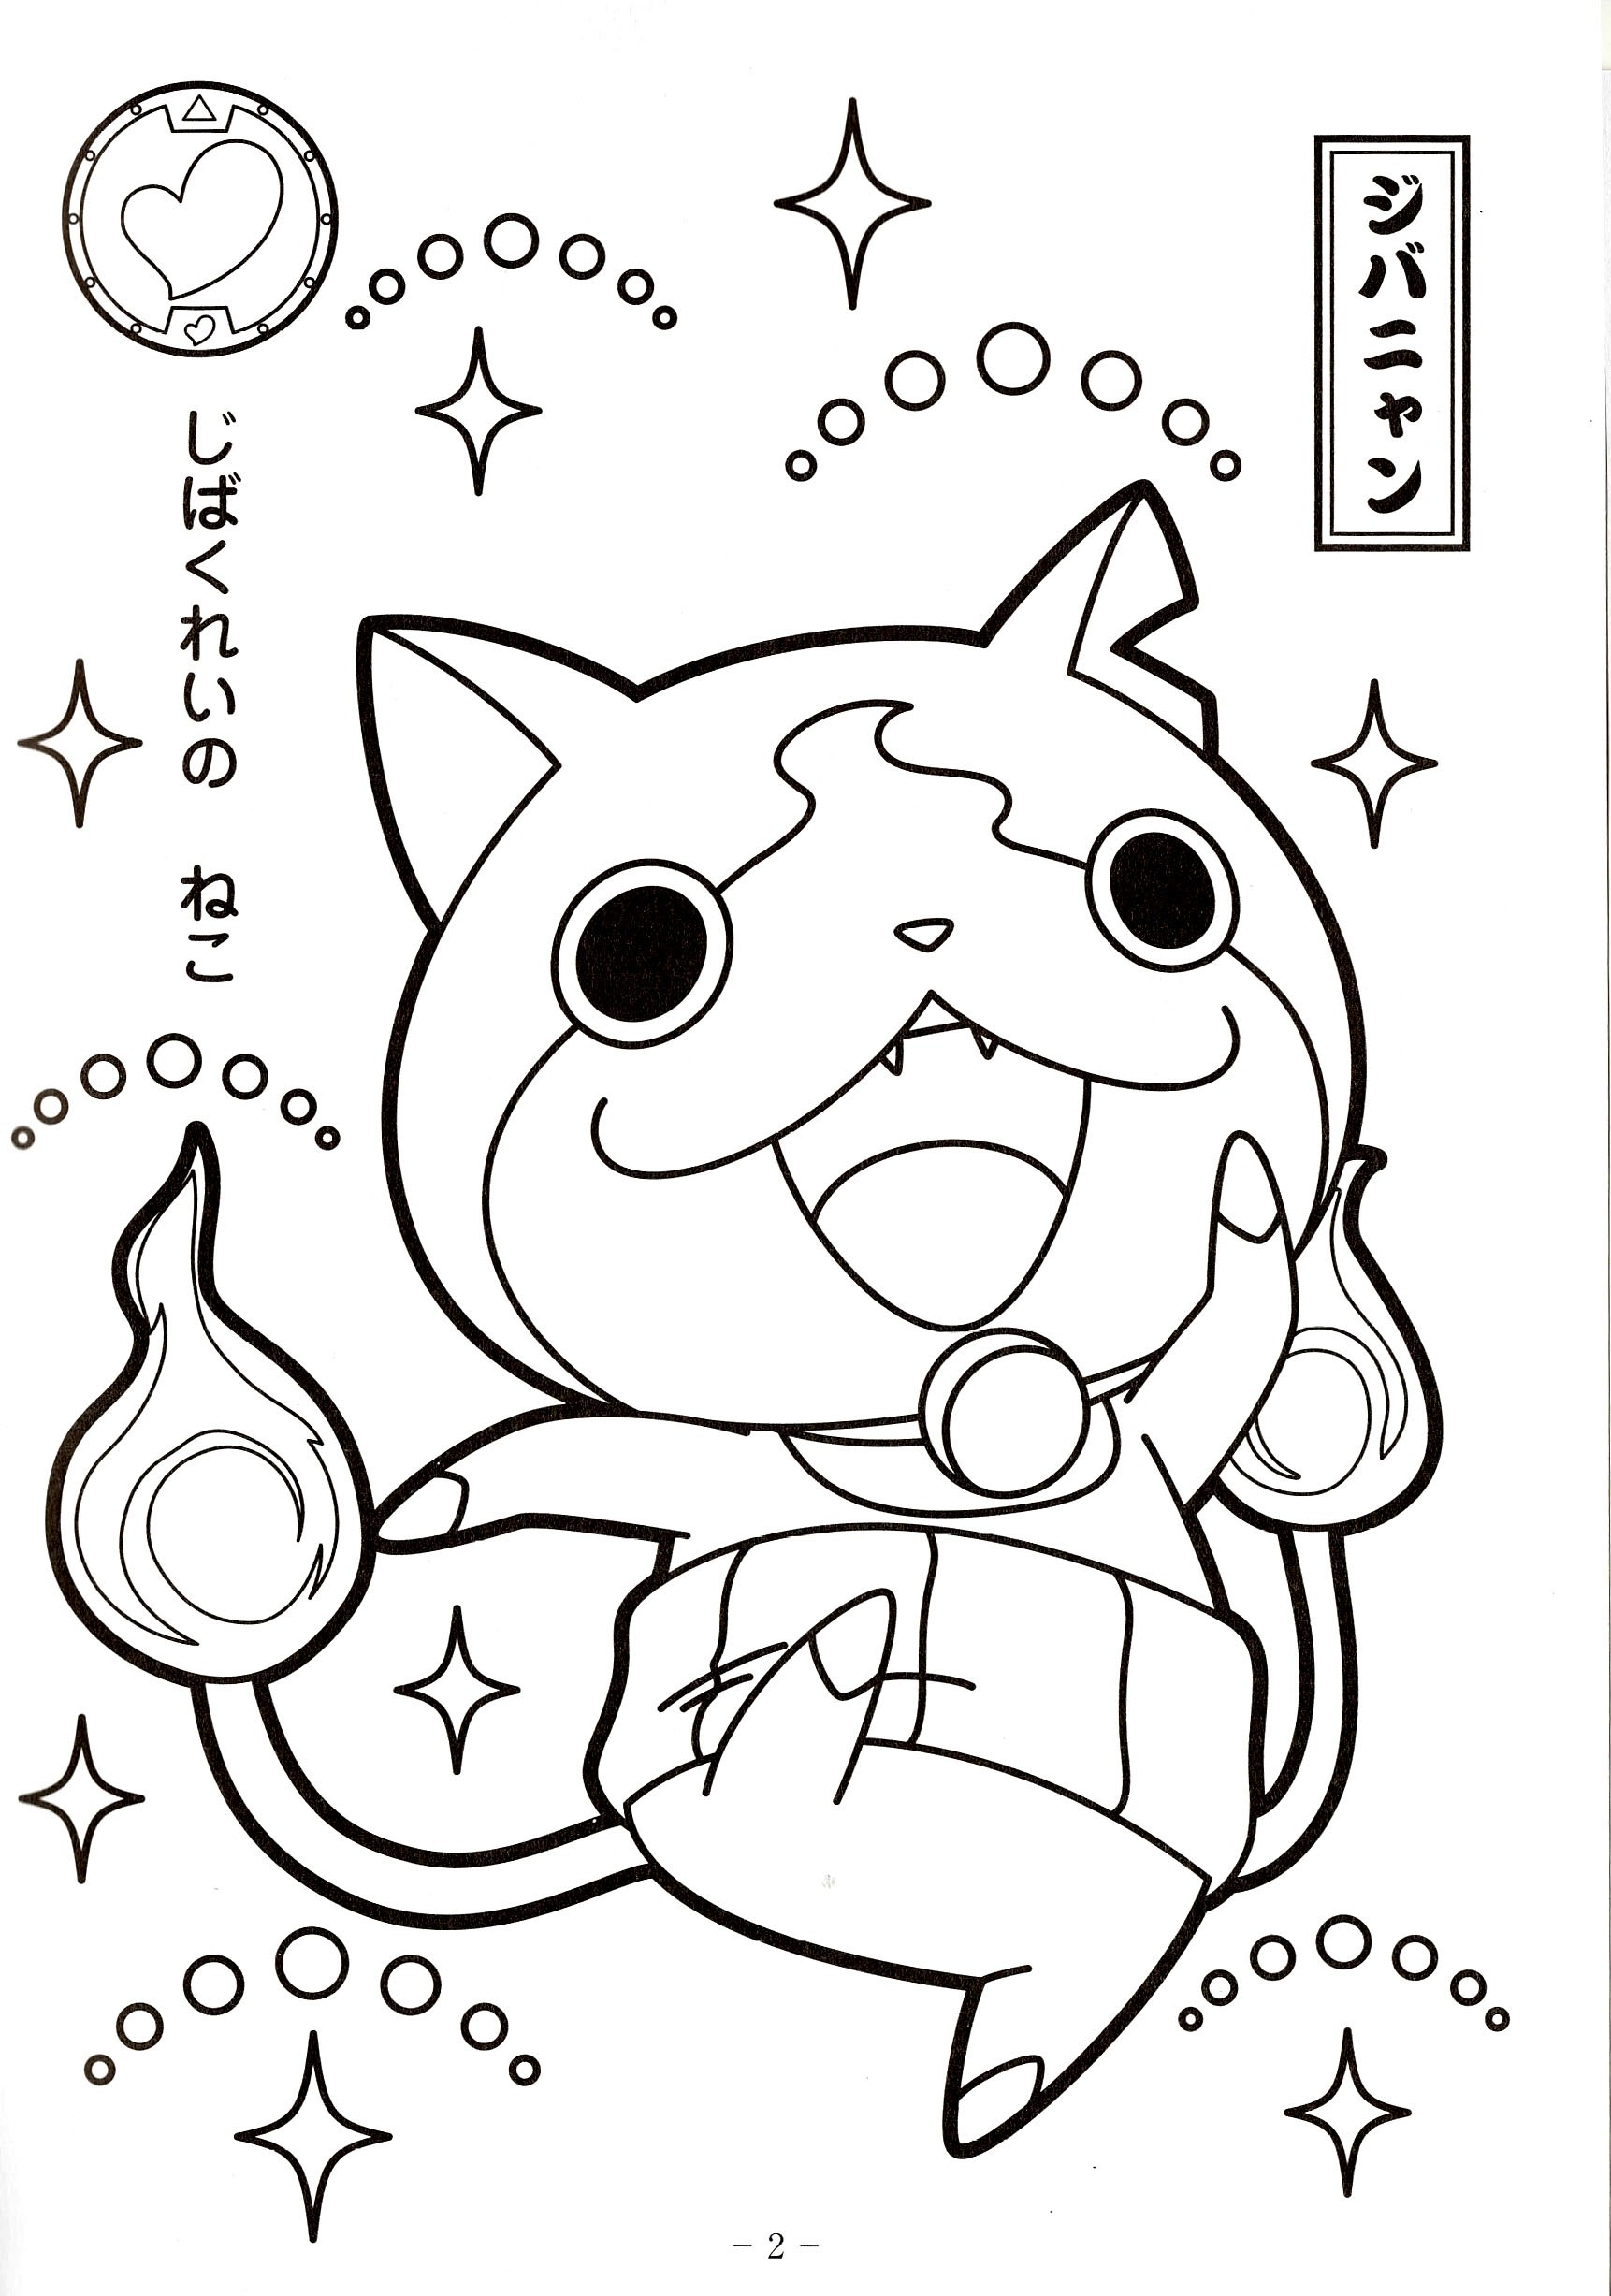 1722x2454 Coloring Pages Yo Kai Watch Images Highest Clarity Colouring